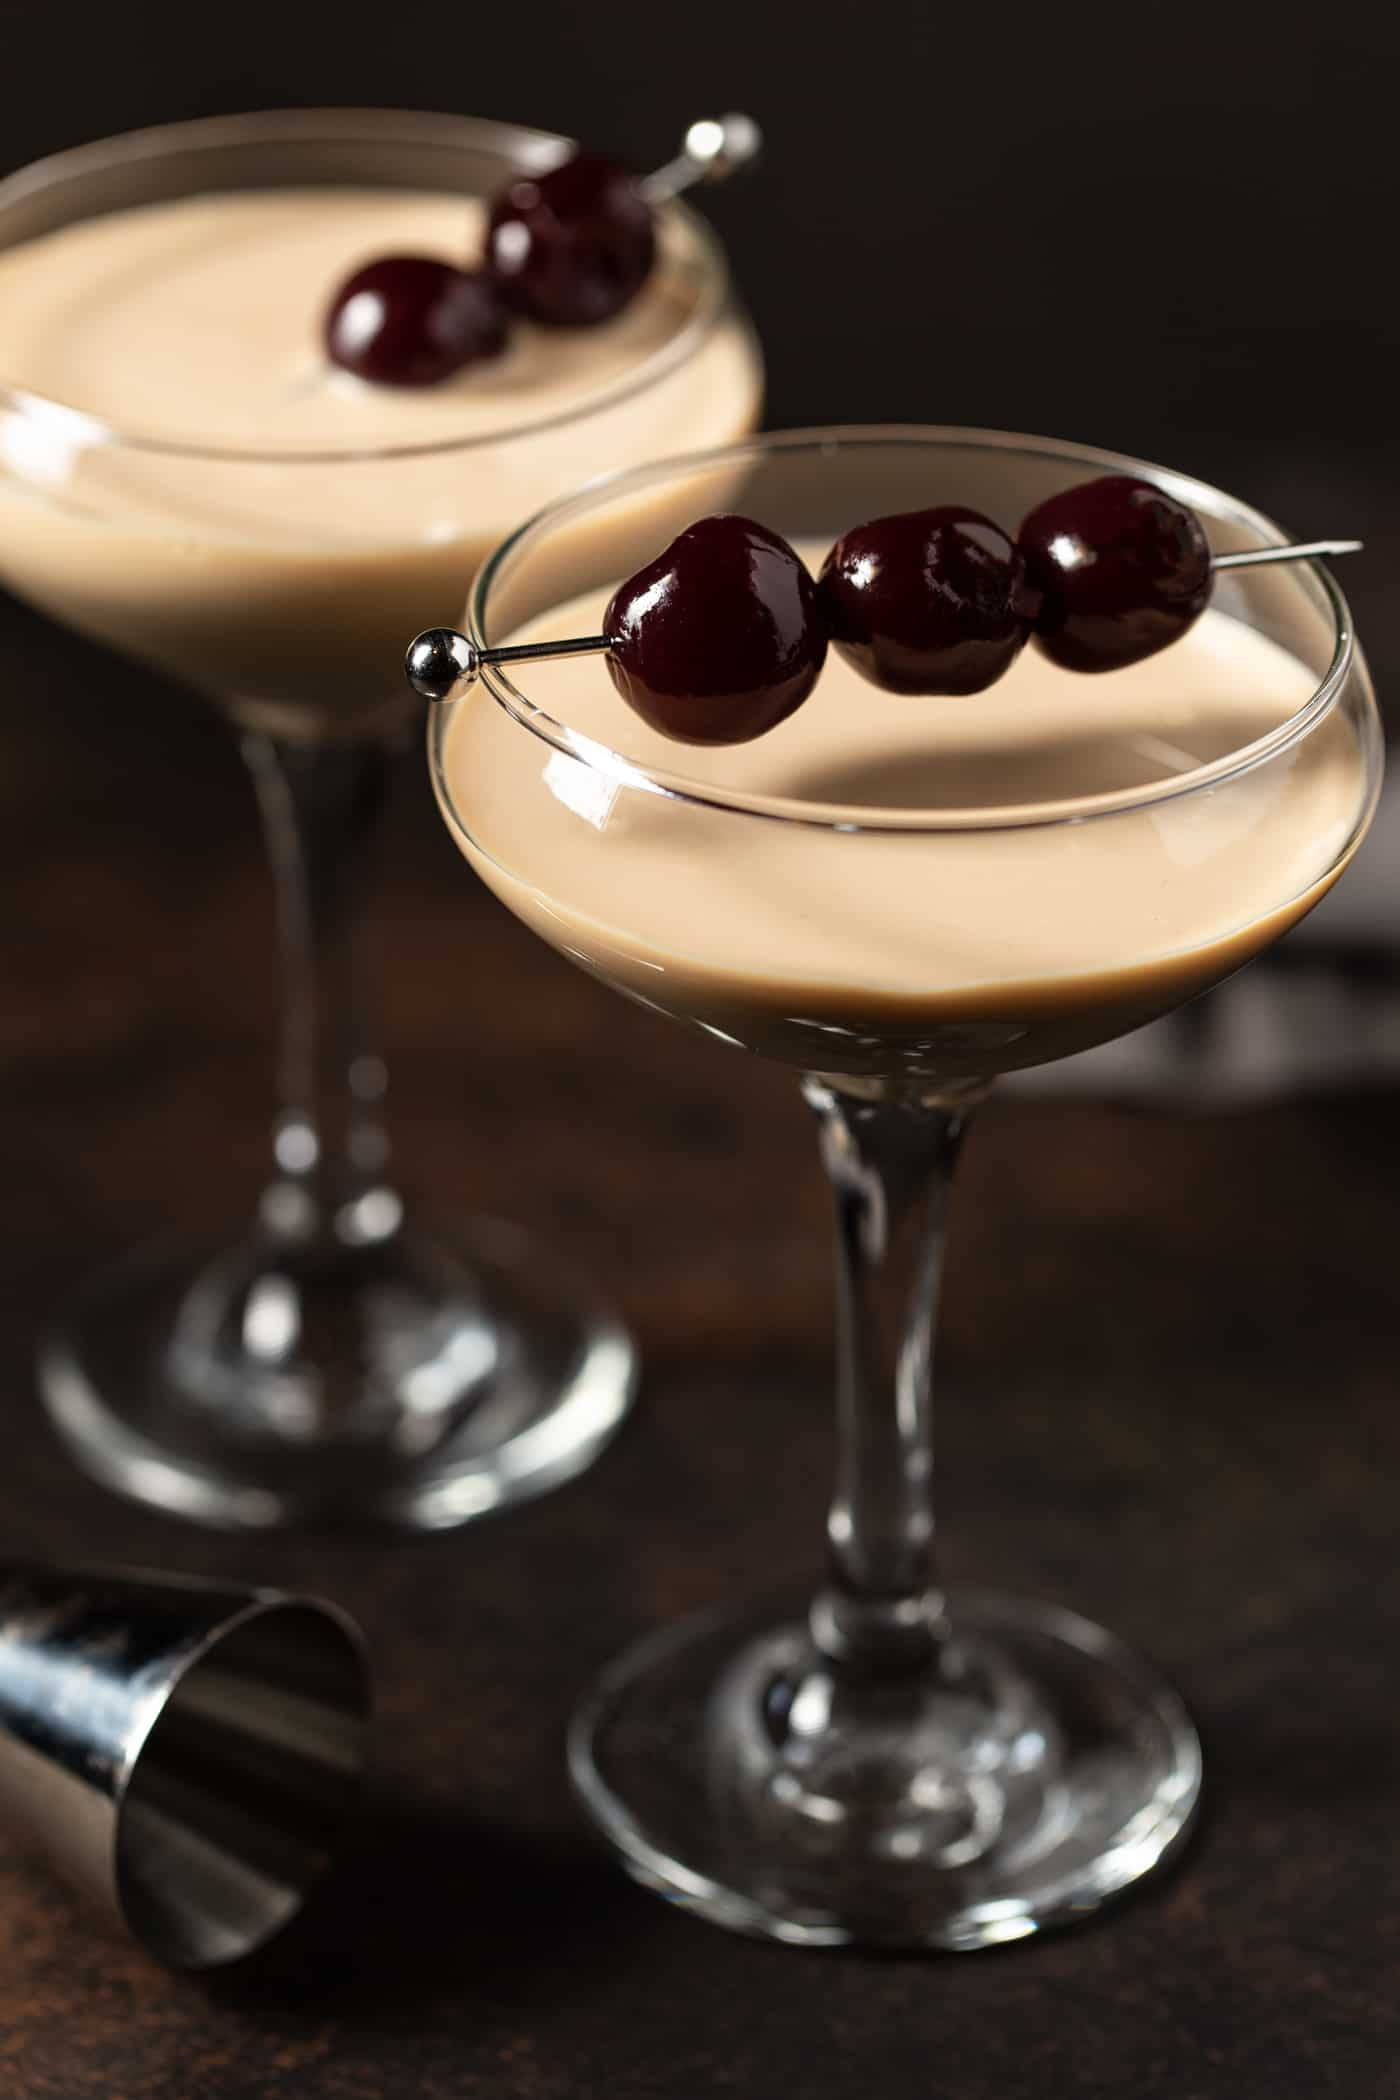 ¾ angle of luxardo cherries on a skewer garnishing a chocolate covered cherry martini.